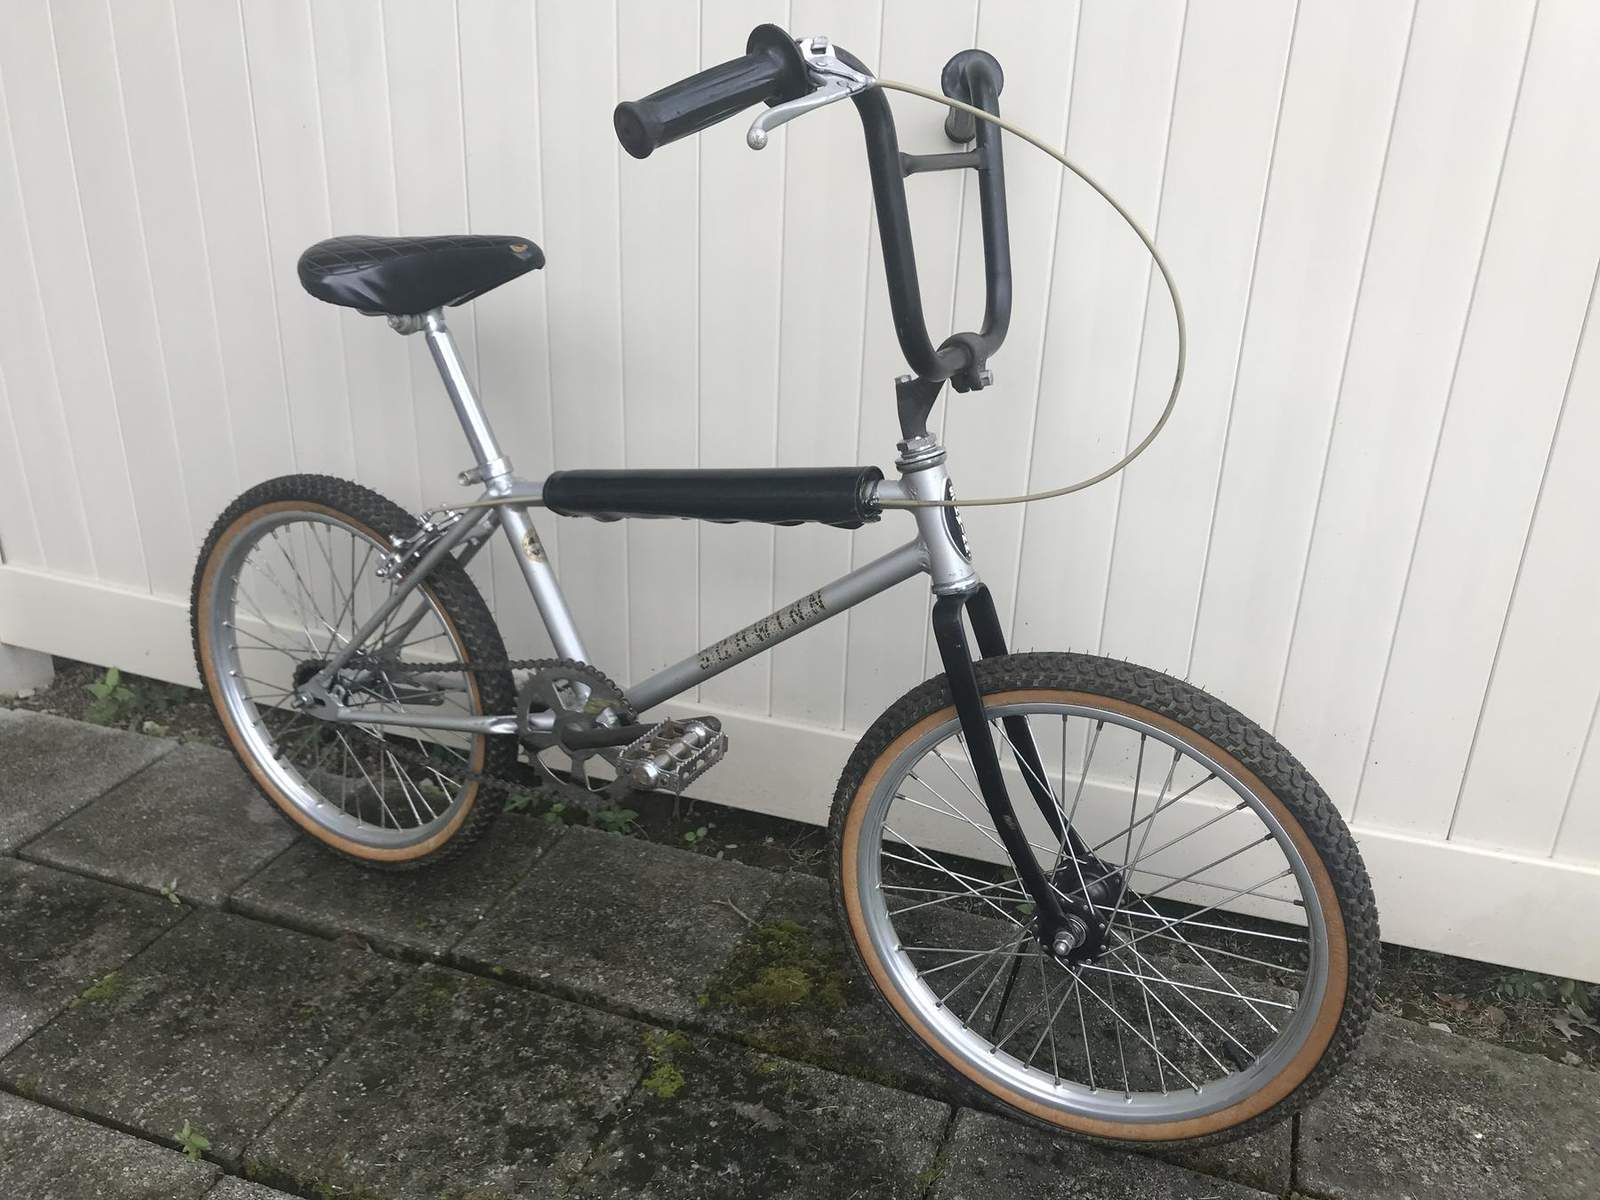 https://s3.amazonaws.com/uploads.bmxmuseum.com/user-images/26696/competition-scrambler5d1b98b92b.jpg